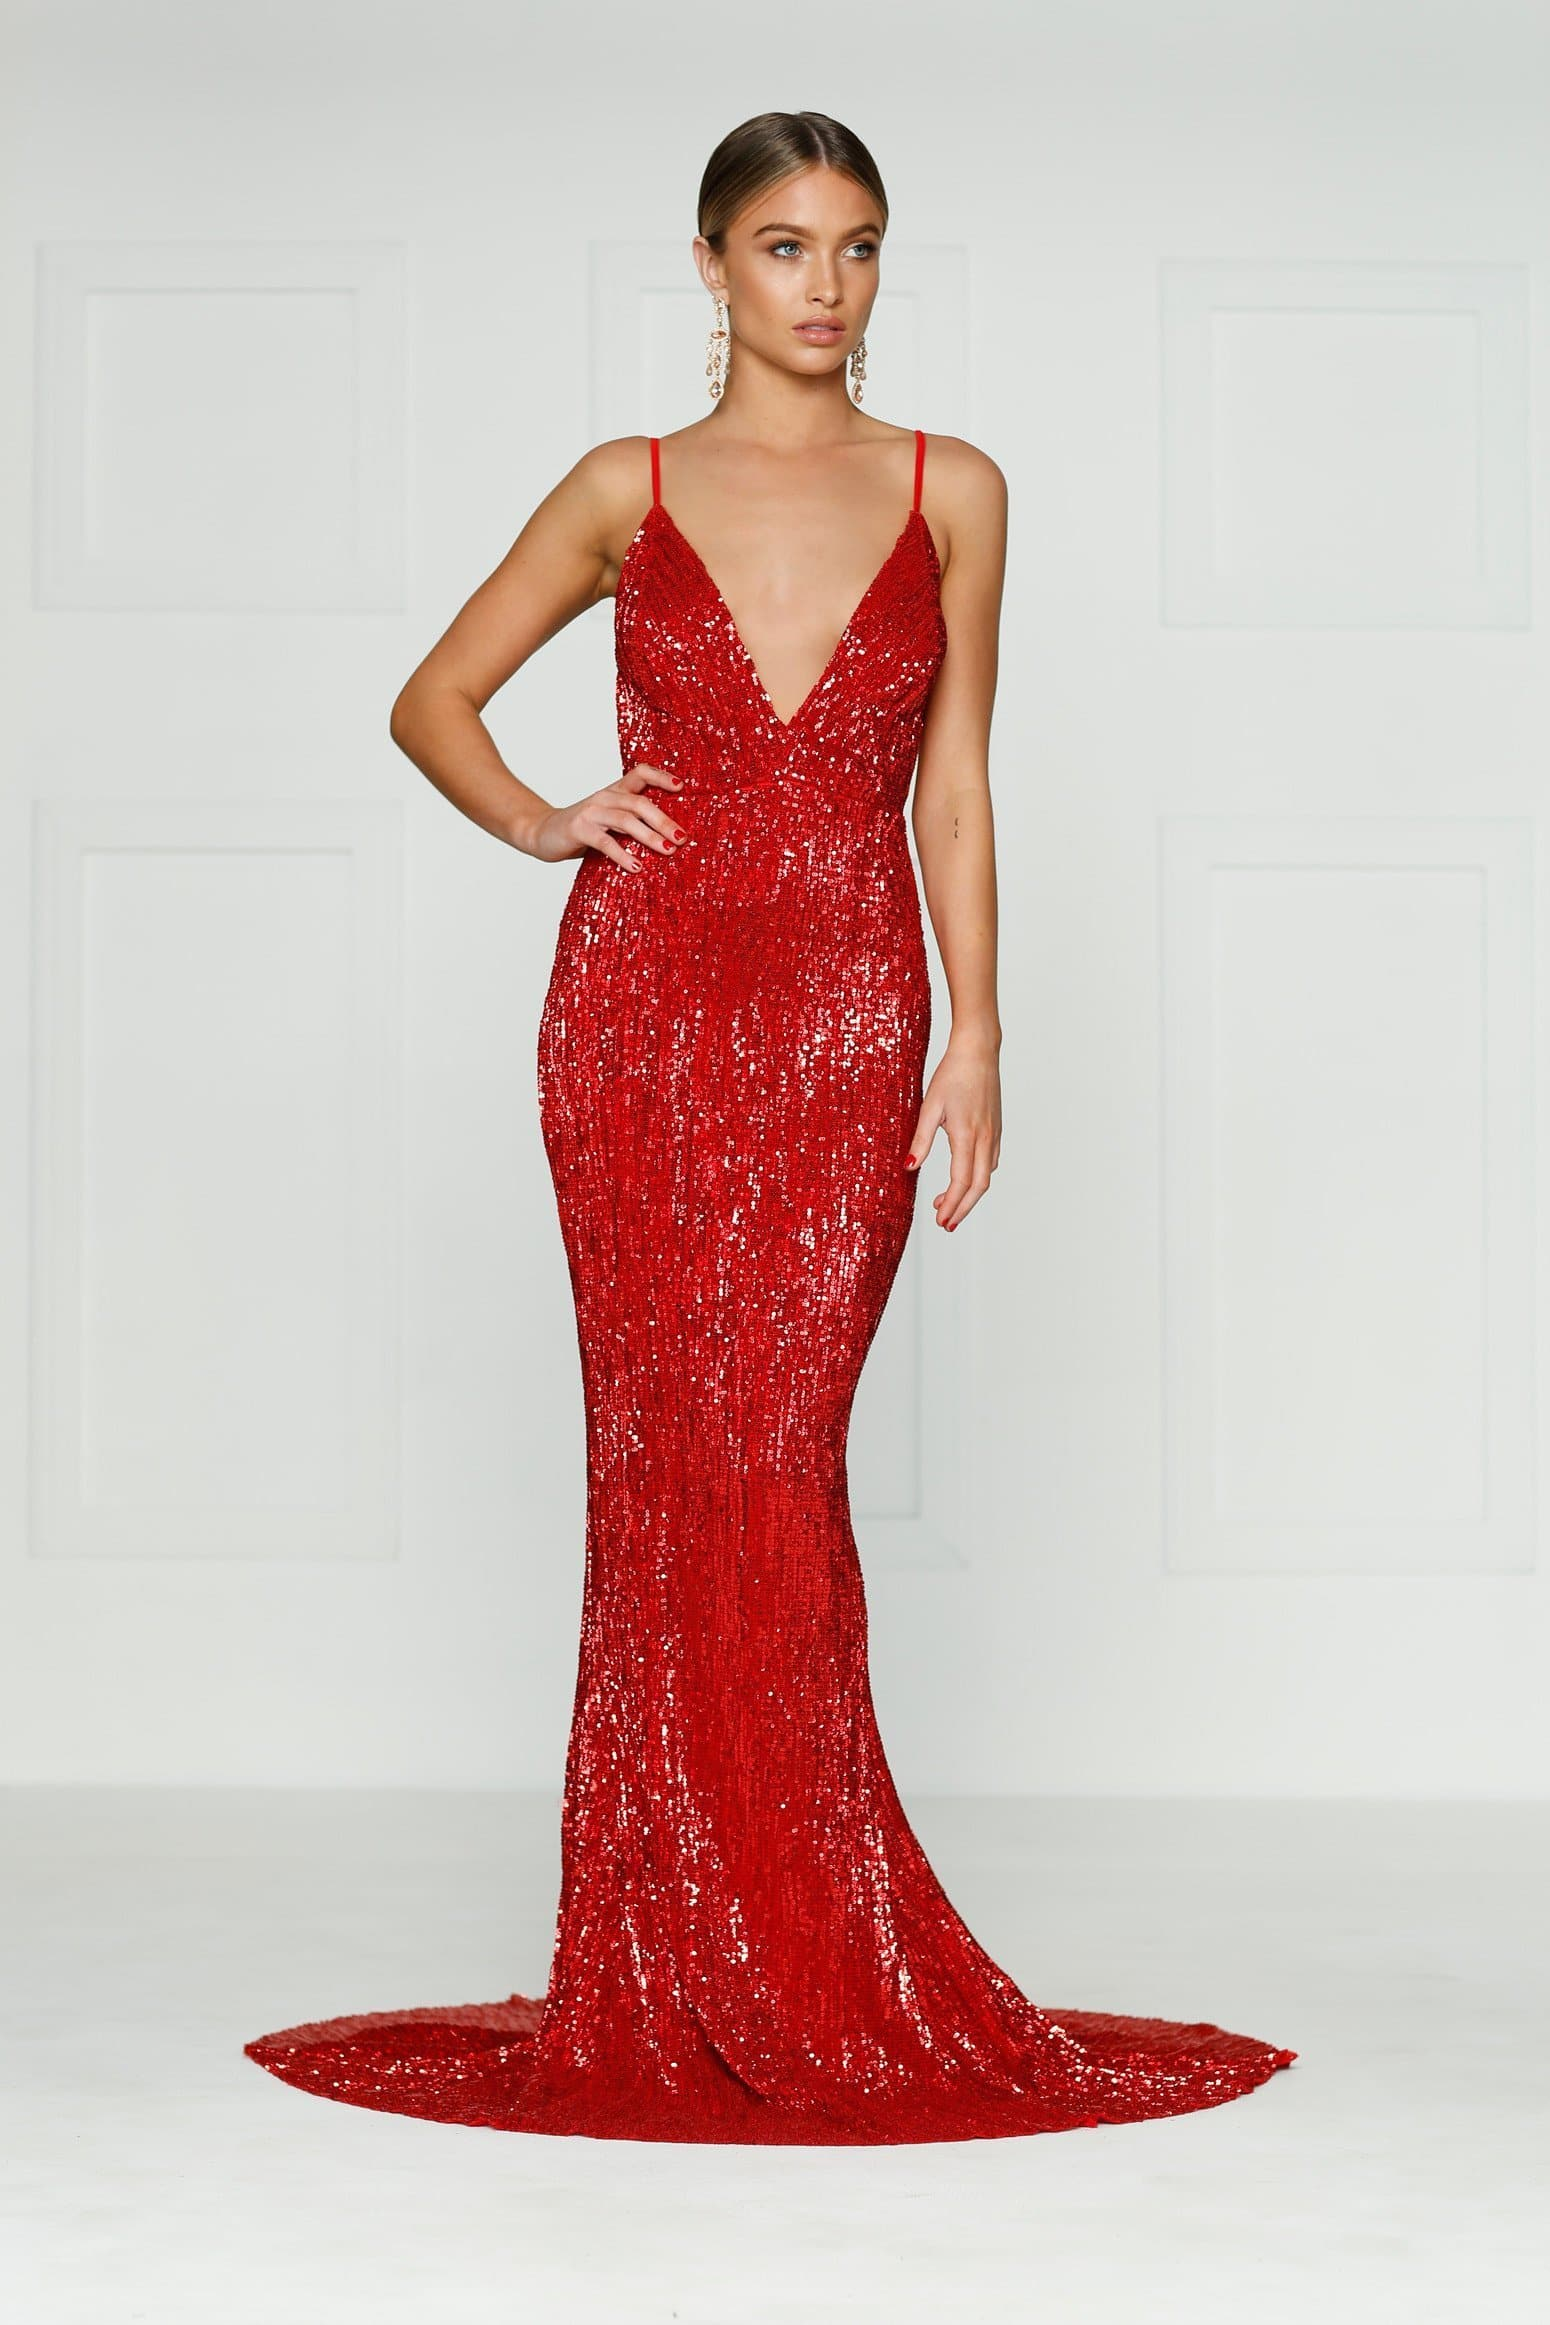 9aac6d533e A N Cynthia- Red Sparkling Dress with V Neck and Low Back – A N Luxe ...